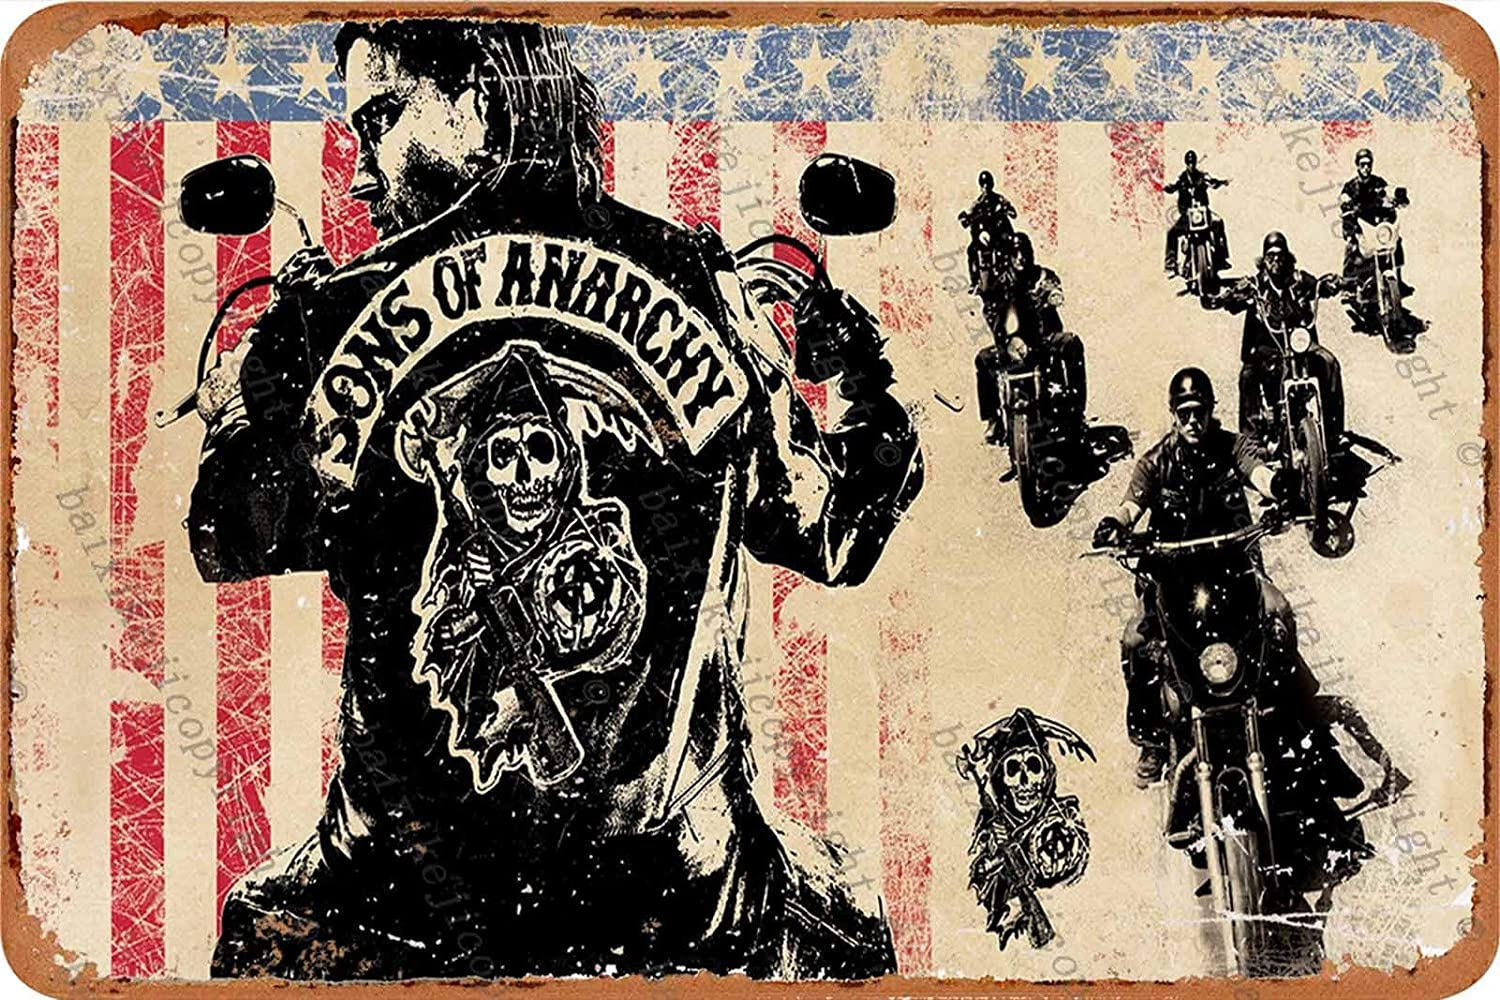 Sons of Anarchy Let Freedoom Ride Tin Retro Sign Vintage Poster Plaque Wall Decor for Bar Cafe Garden Bedroom Office Hotel 20x30 cm